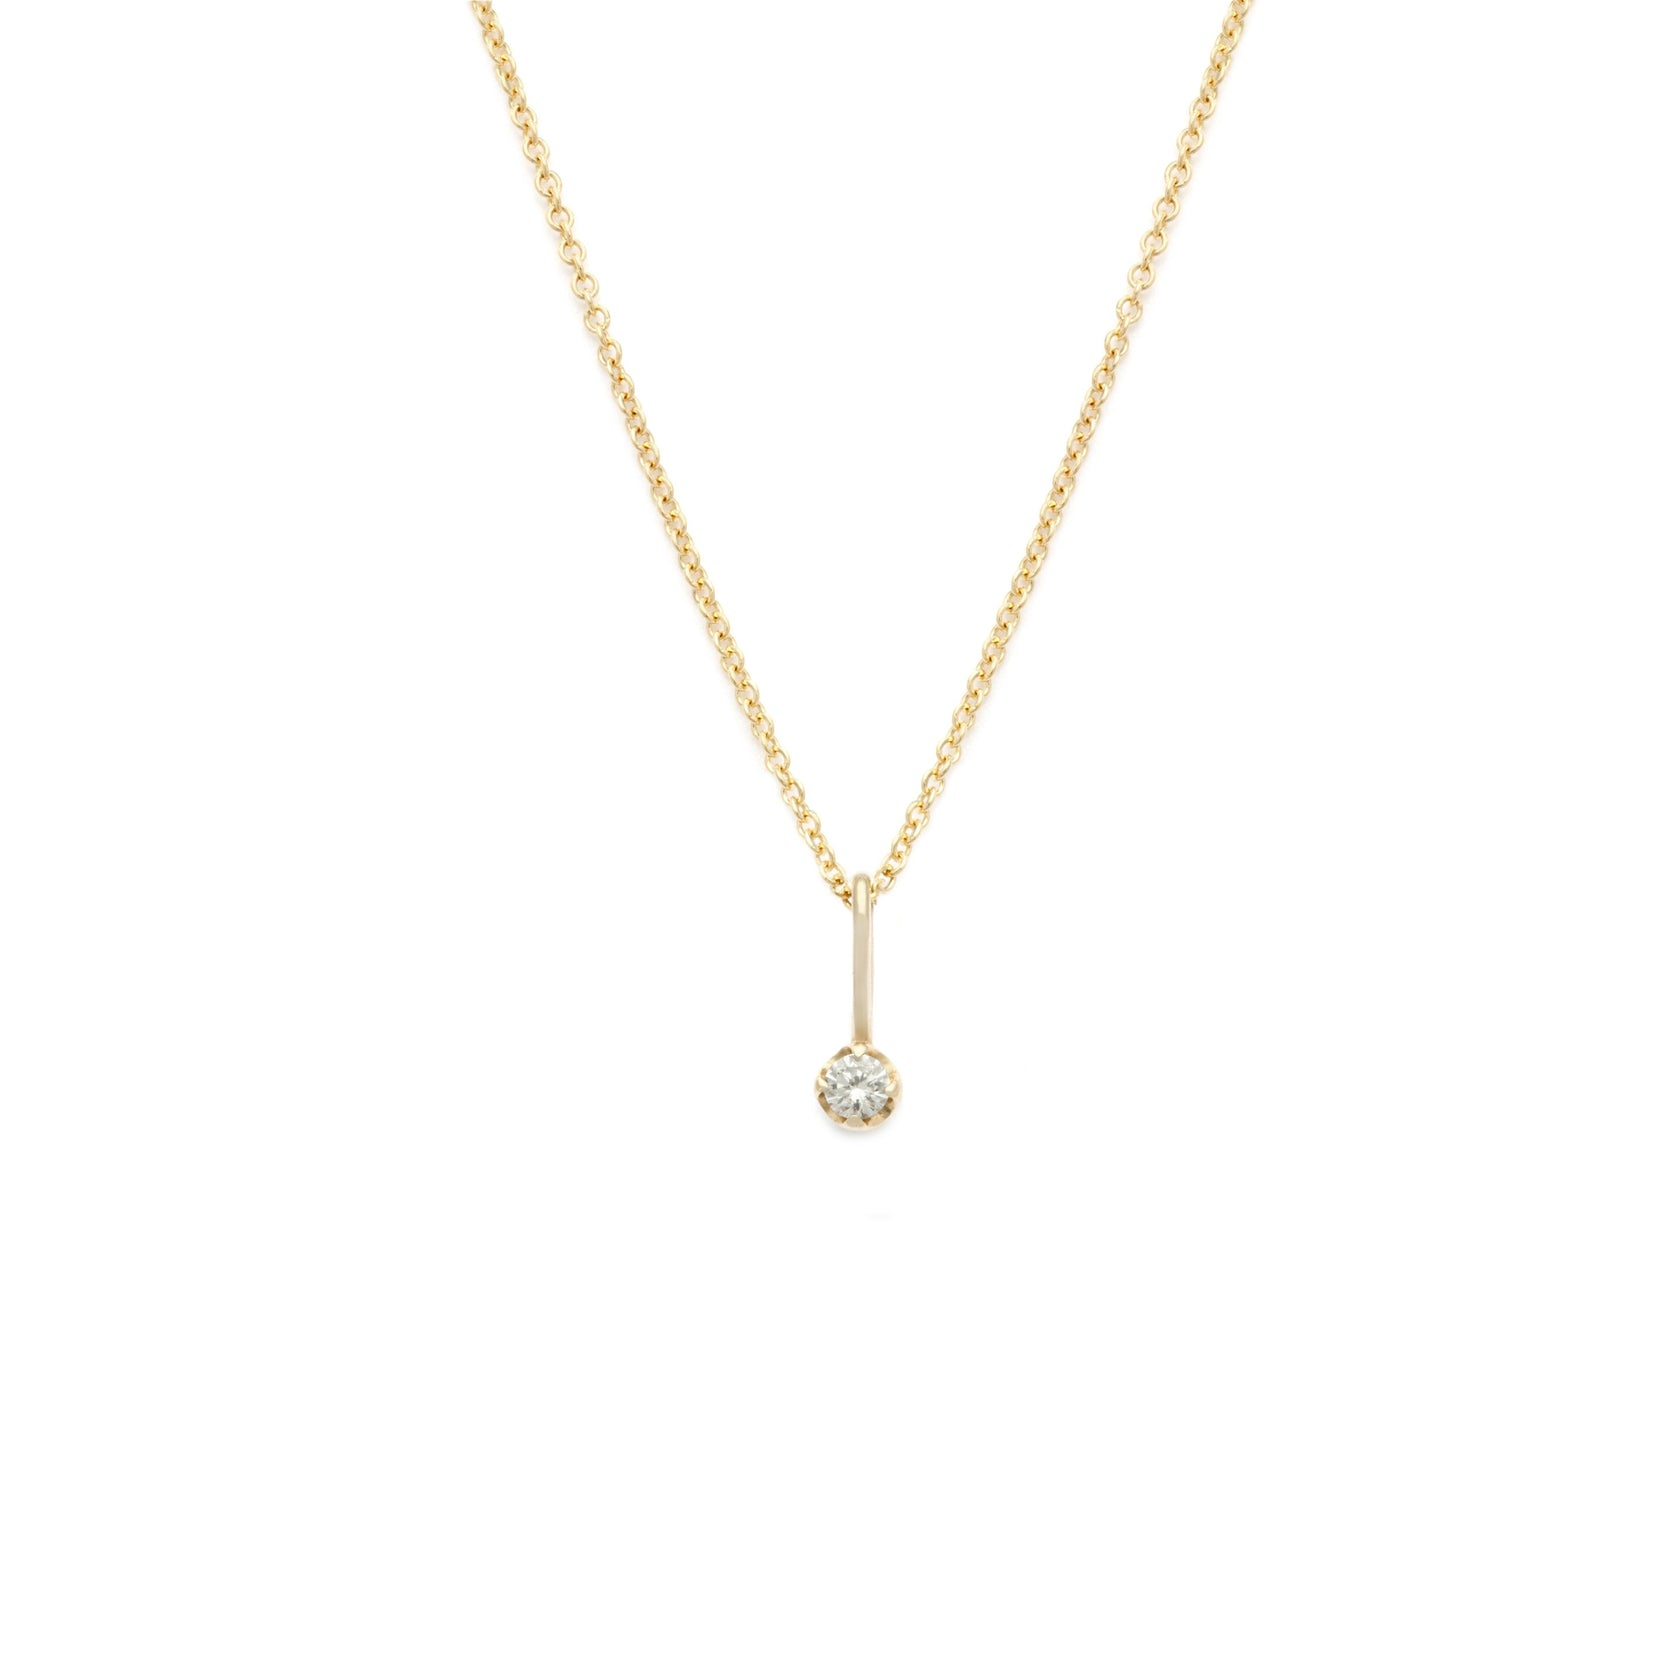 Coveted White Sapphire Pendant - 14k Solid Gold